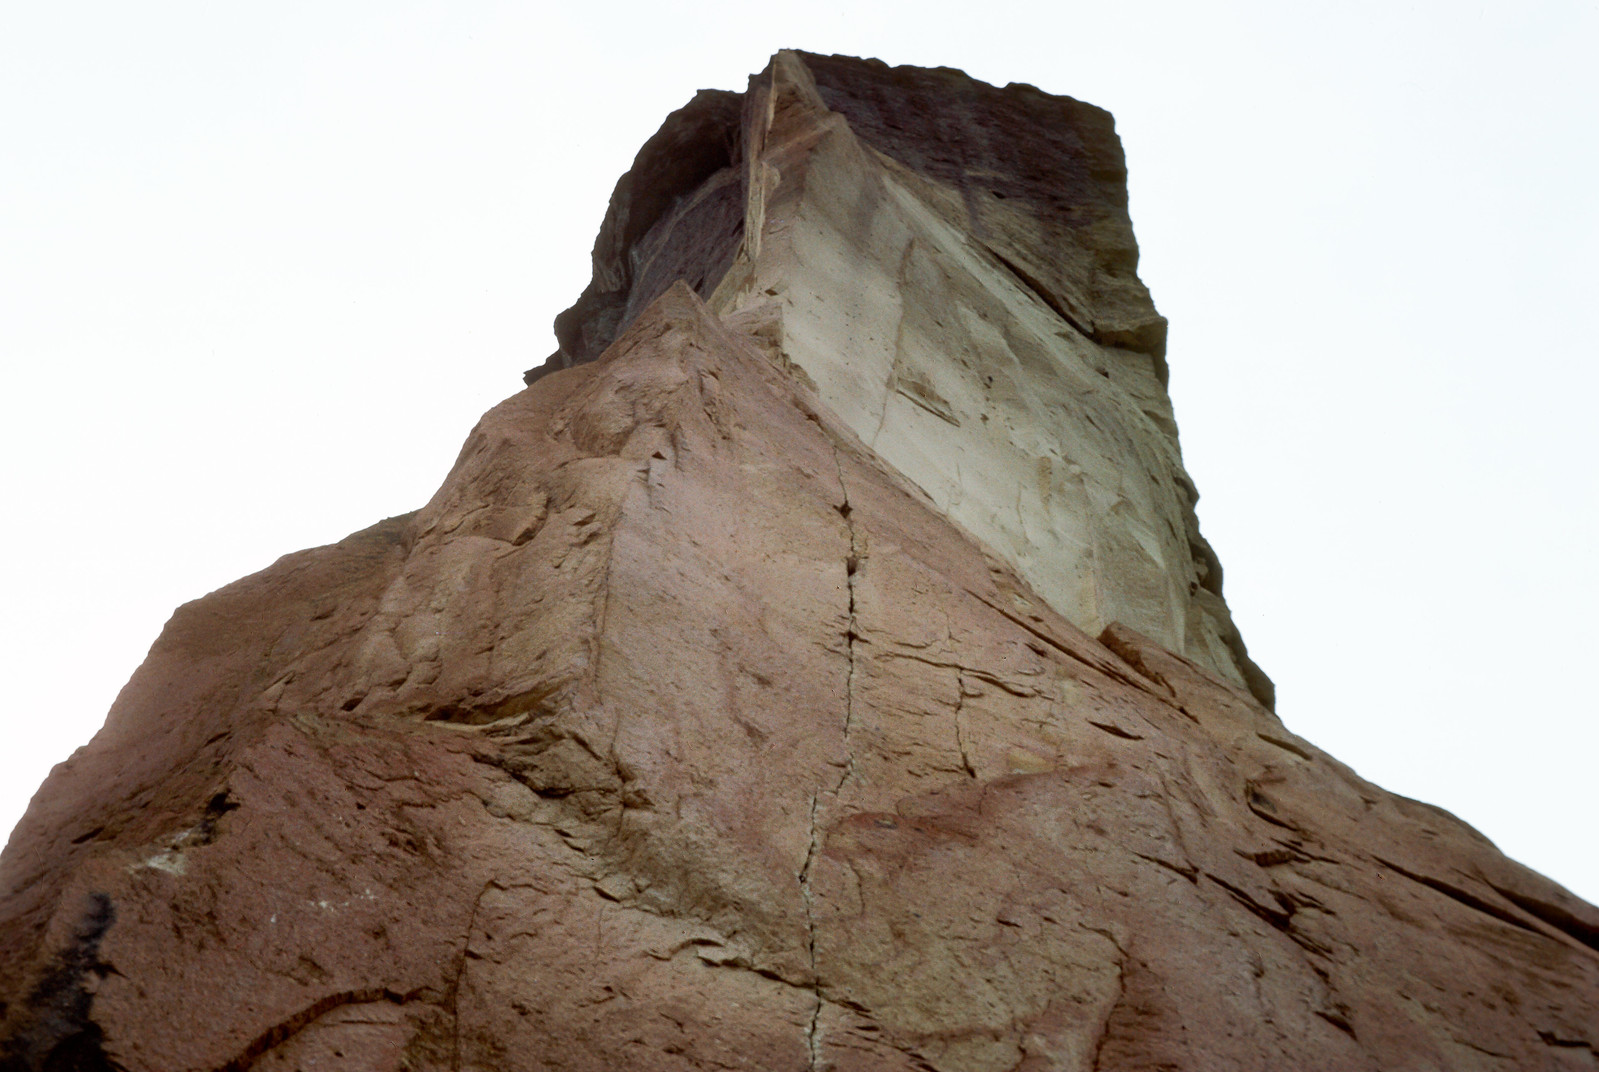 West face of Monkey Face